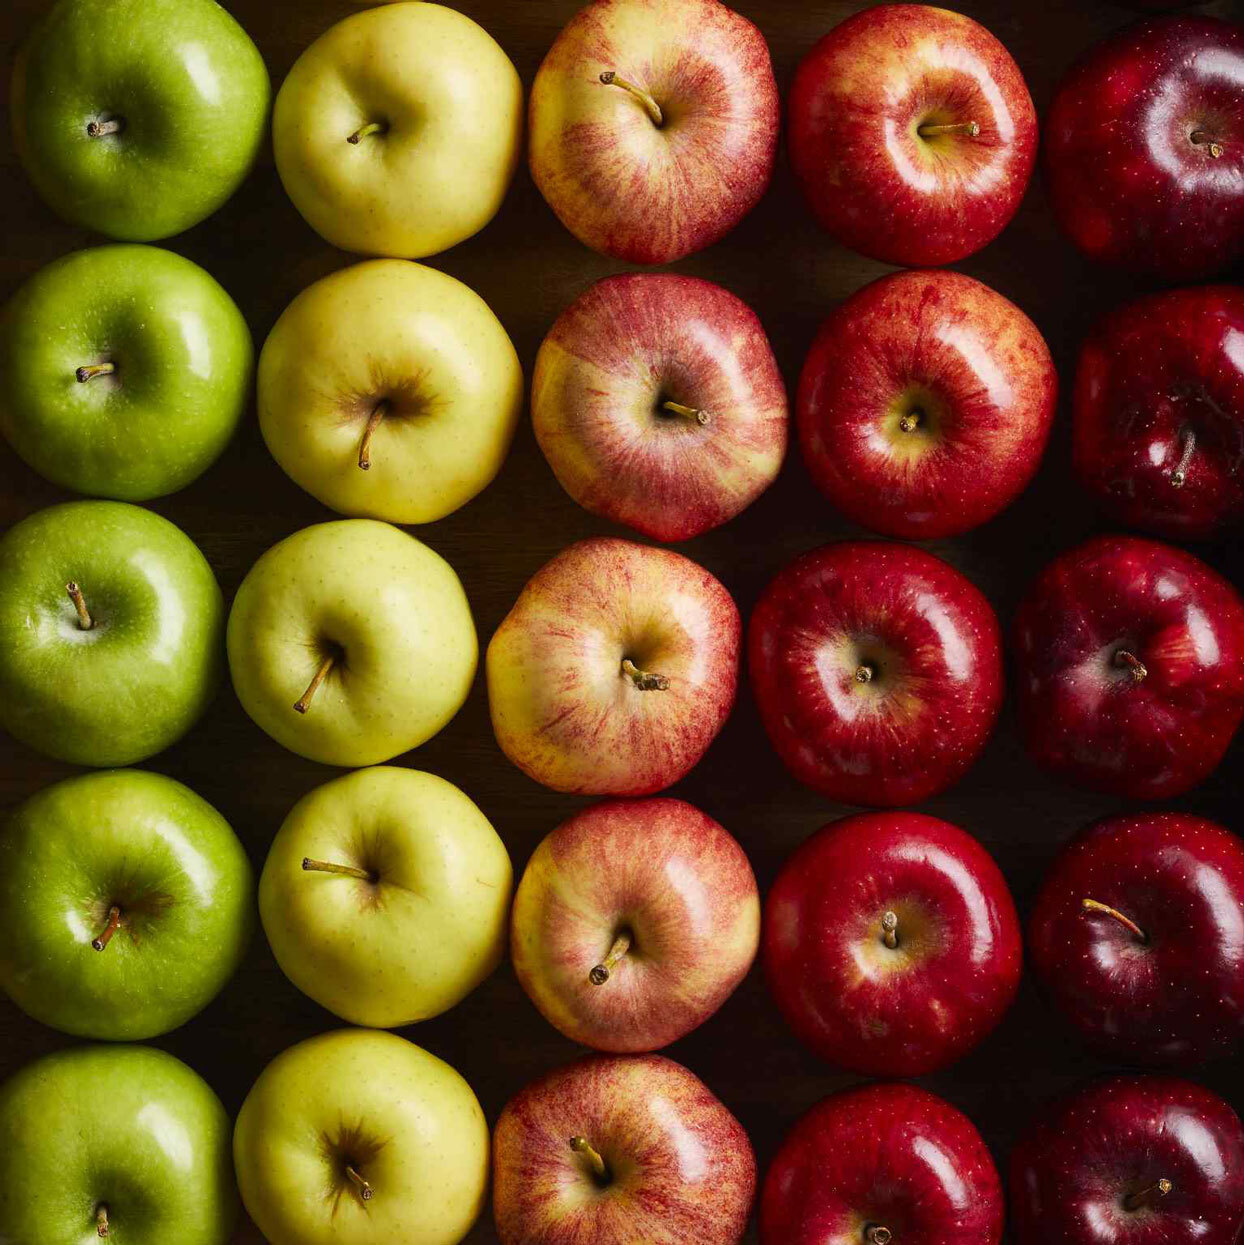 types of apples lined up by color and shade